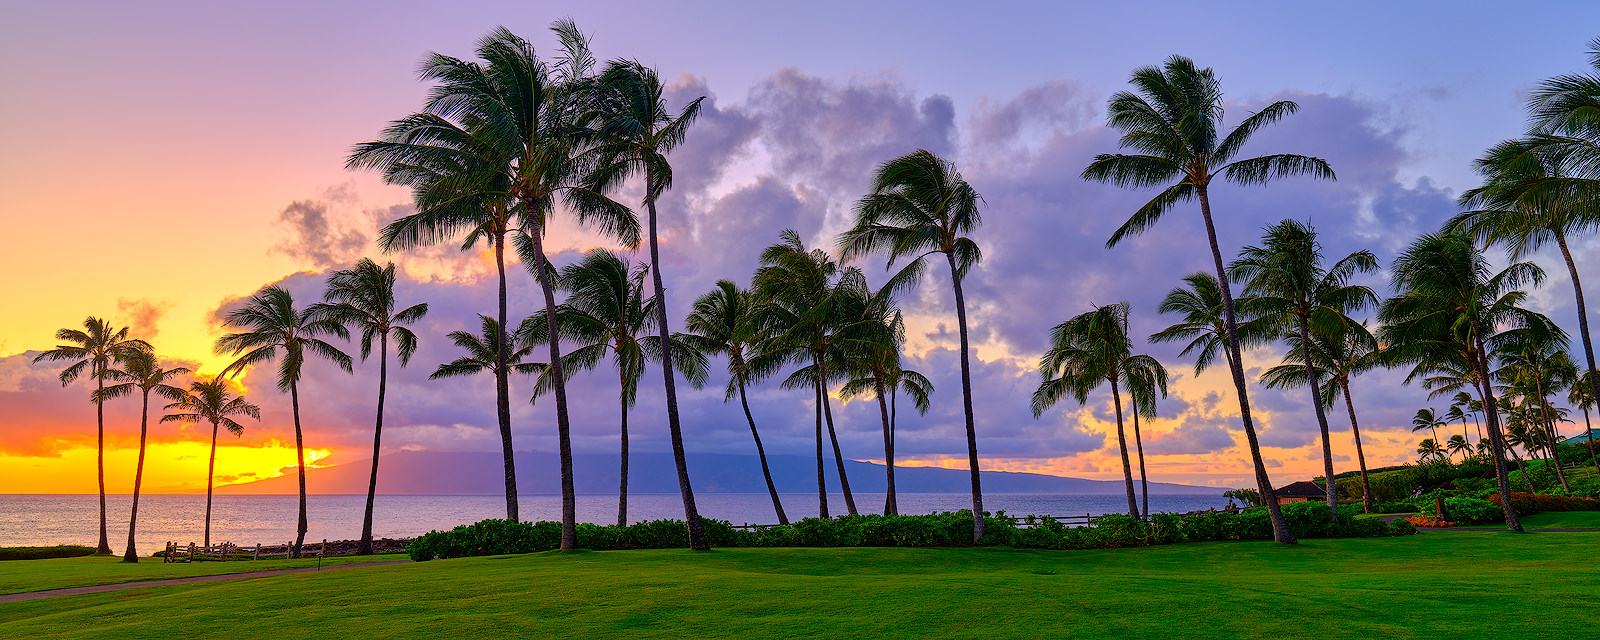 a panoramic scene at Kapalua Bay on the island of Maui at sunset with coconut palms and the Hawaiian island of Molokai in the background.